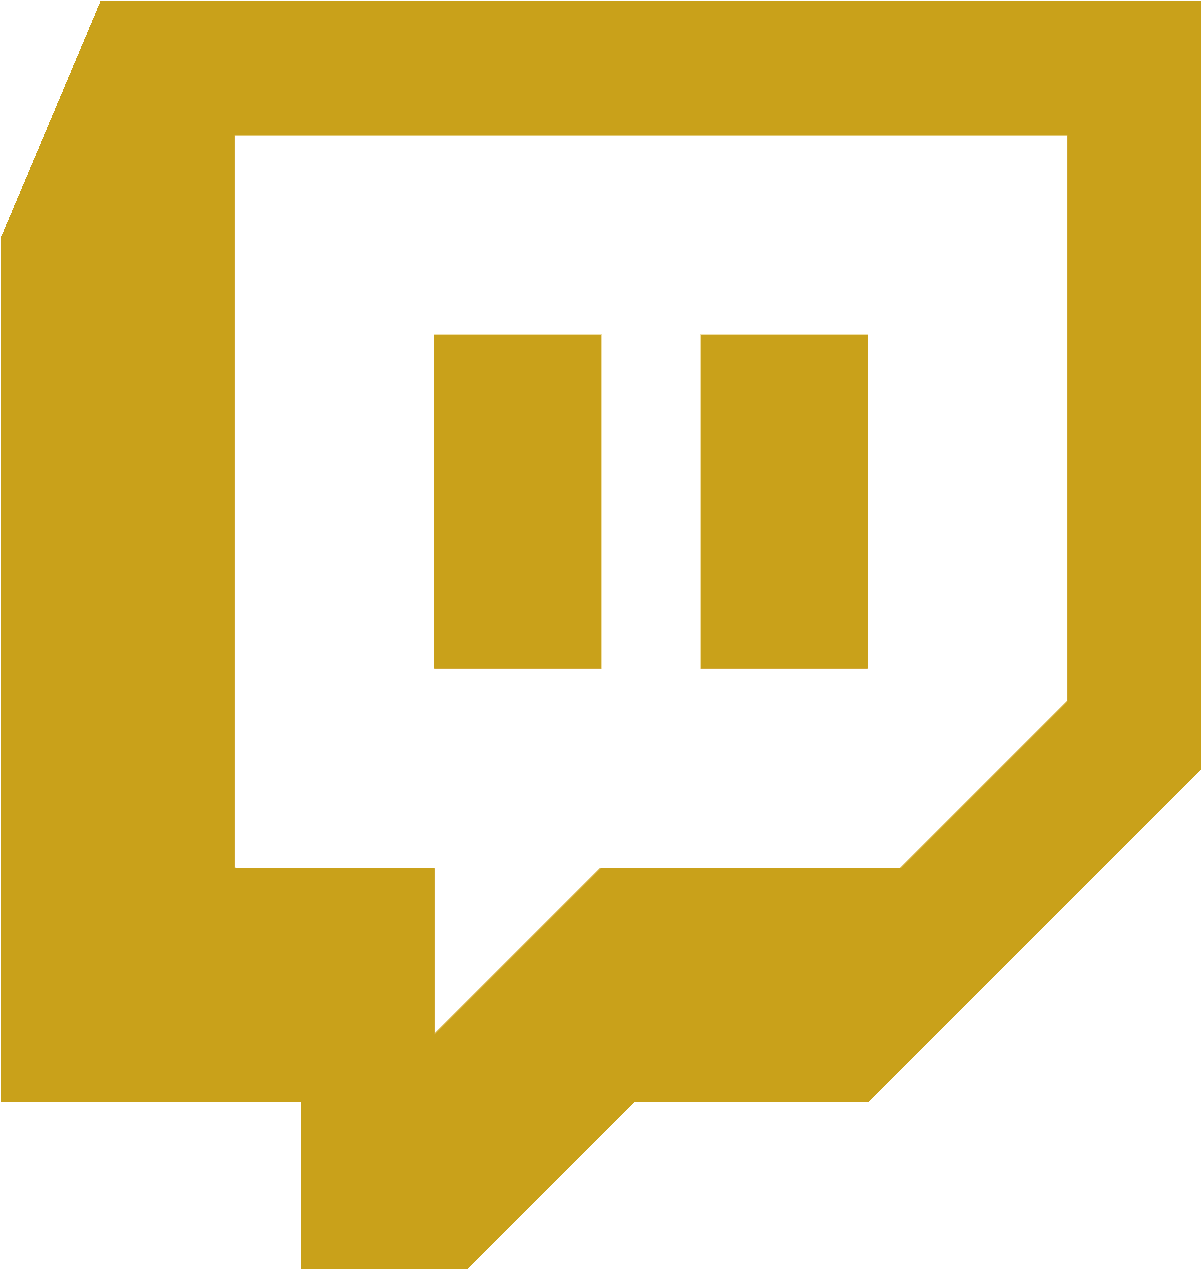 Download Twitch Logo Transparent Png, Png Download - Uokpl.rs - Twitch Logo PNG